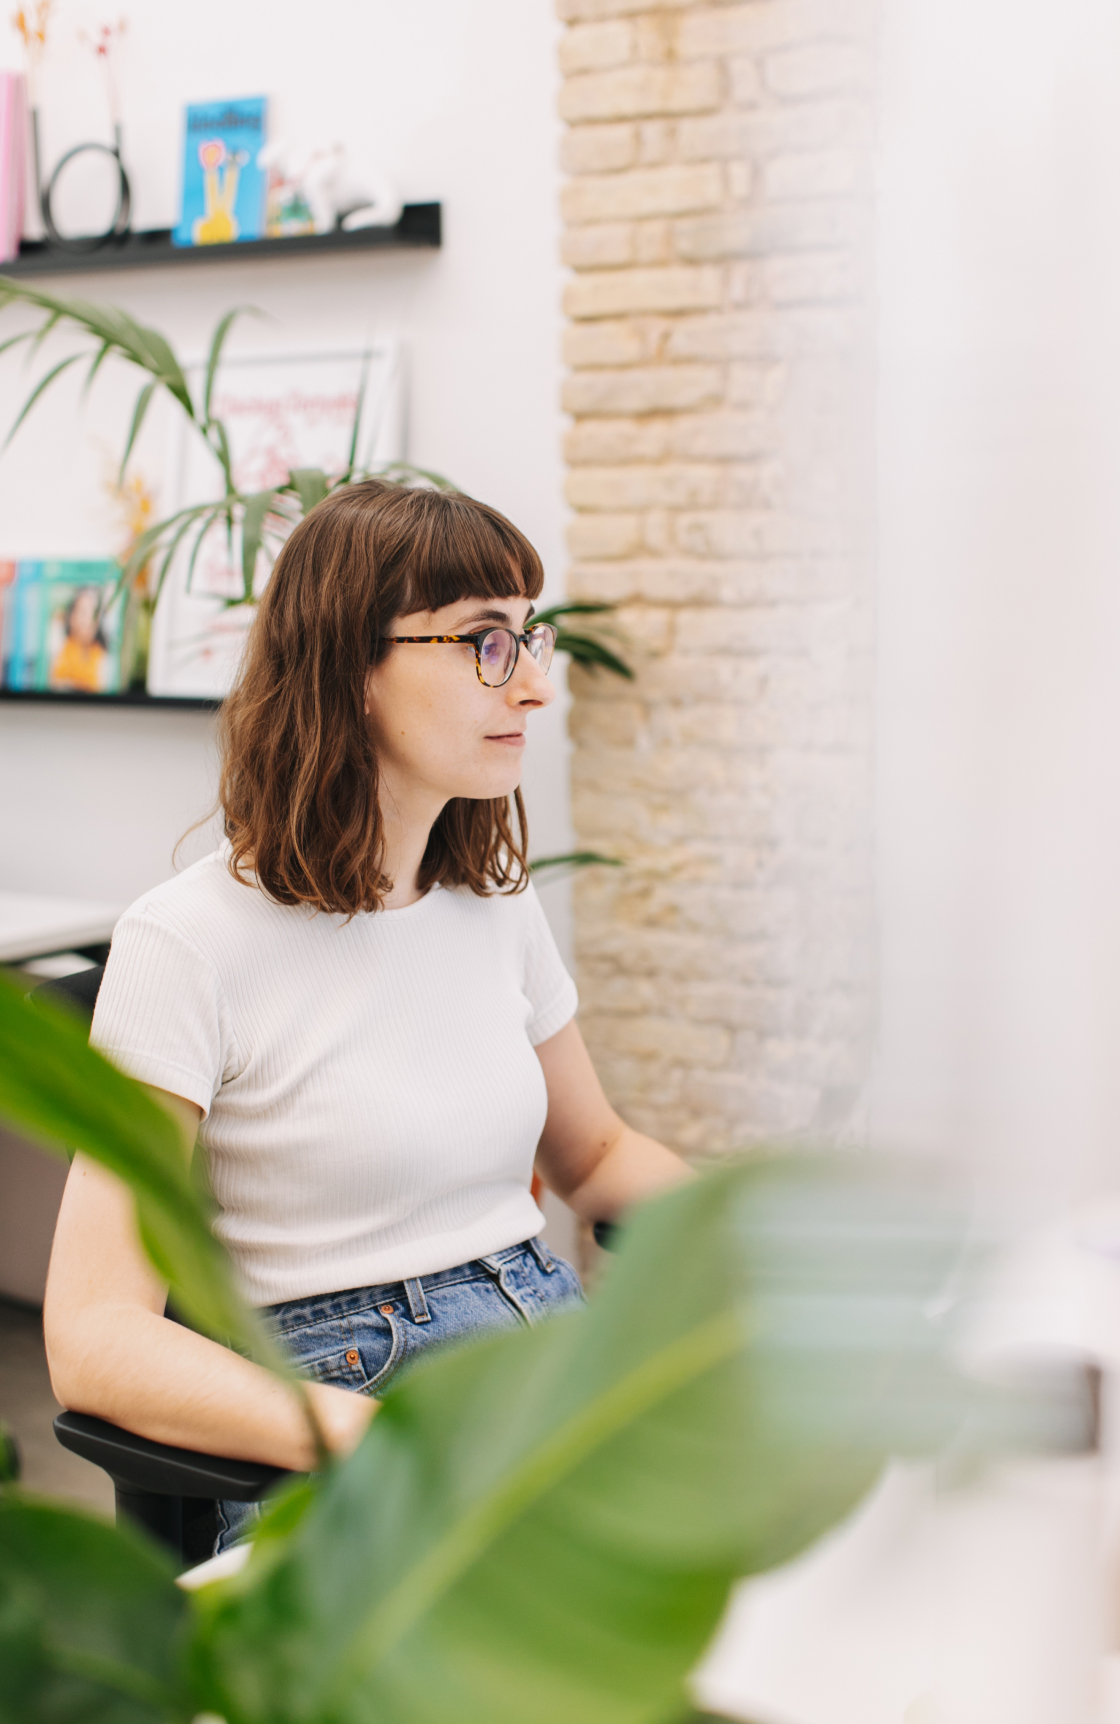 Person working on sofa with a laptop on their lap